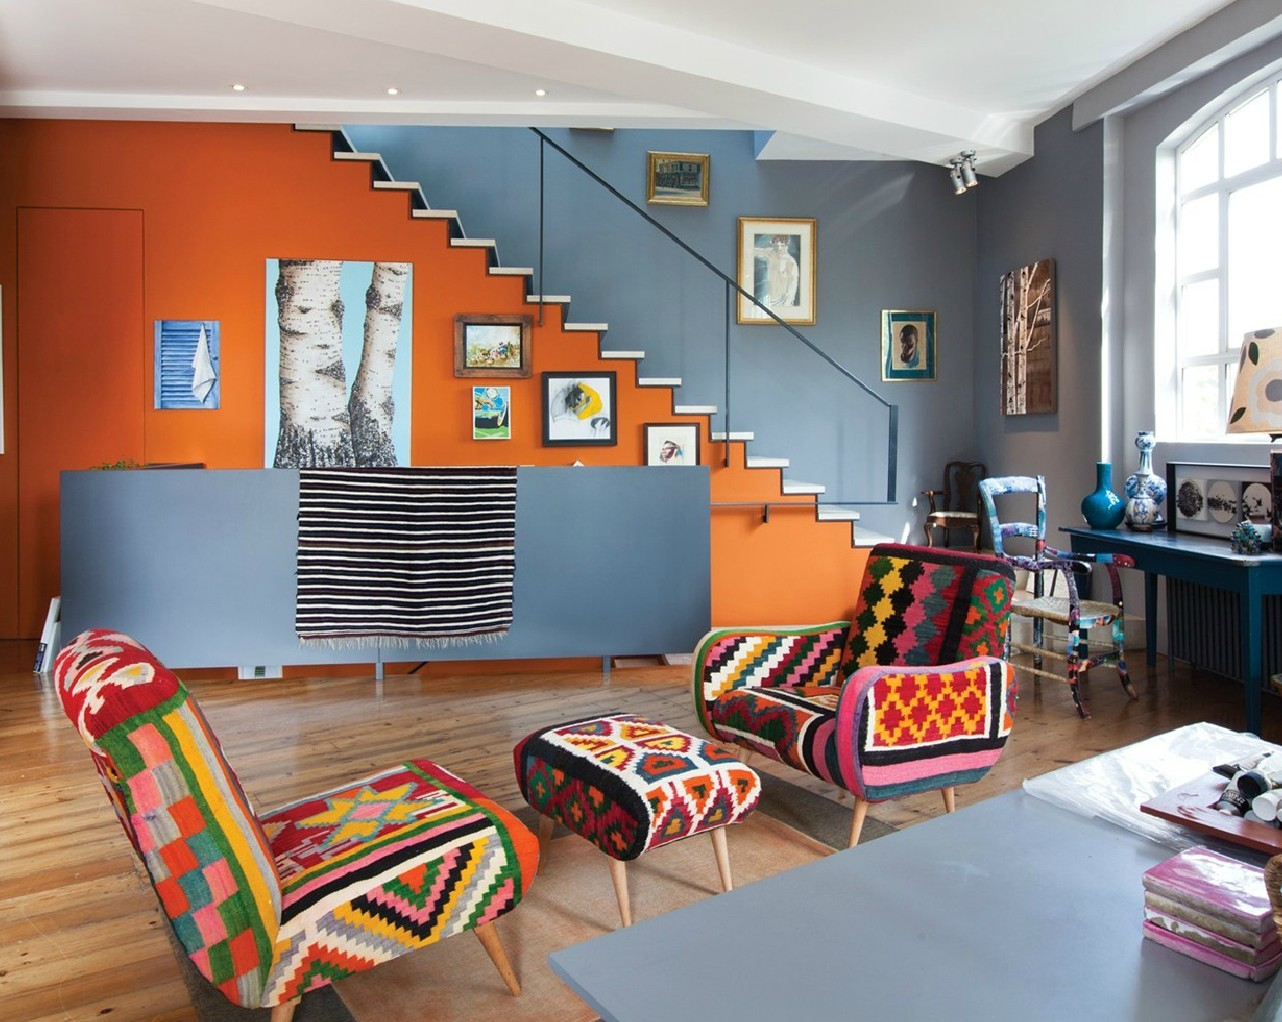 Fascinating Blue What Colors Go Orange Walls Roselawnluran Colors That Go Orange Orange Hair Orange Walls Home Design What Colors Go What Color Furniture Goes houzz-03 What Colors Go With Orange